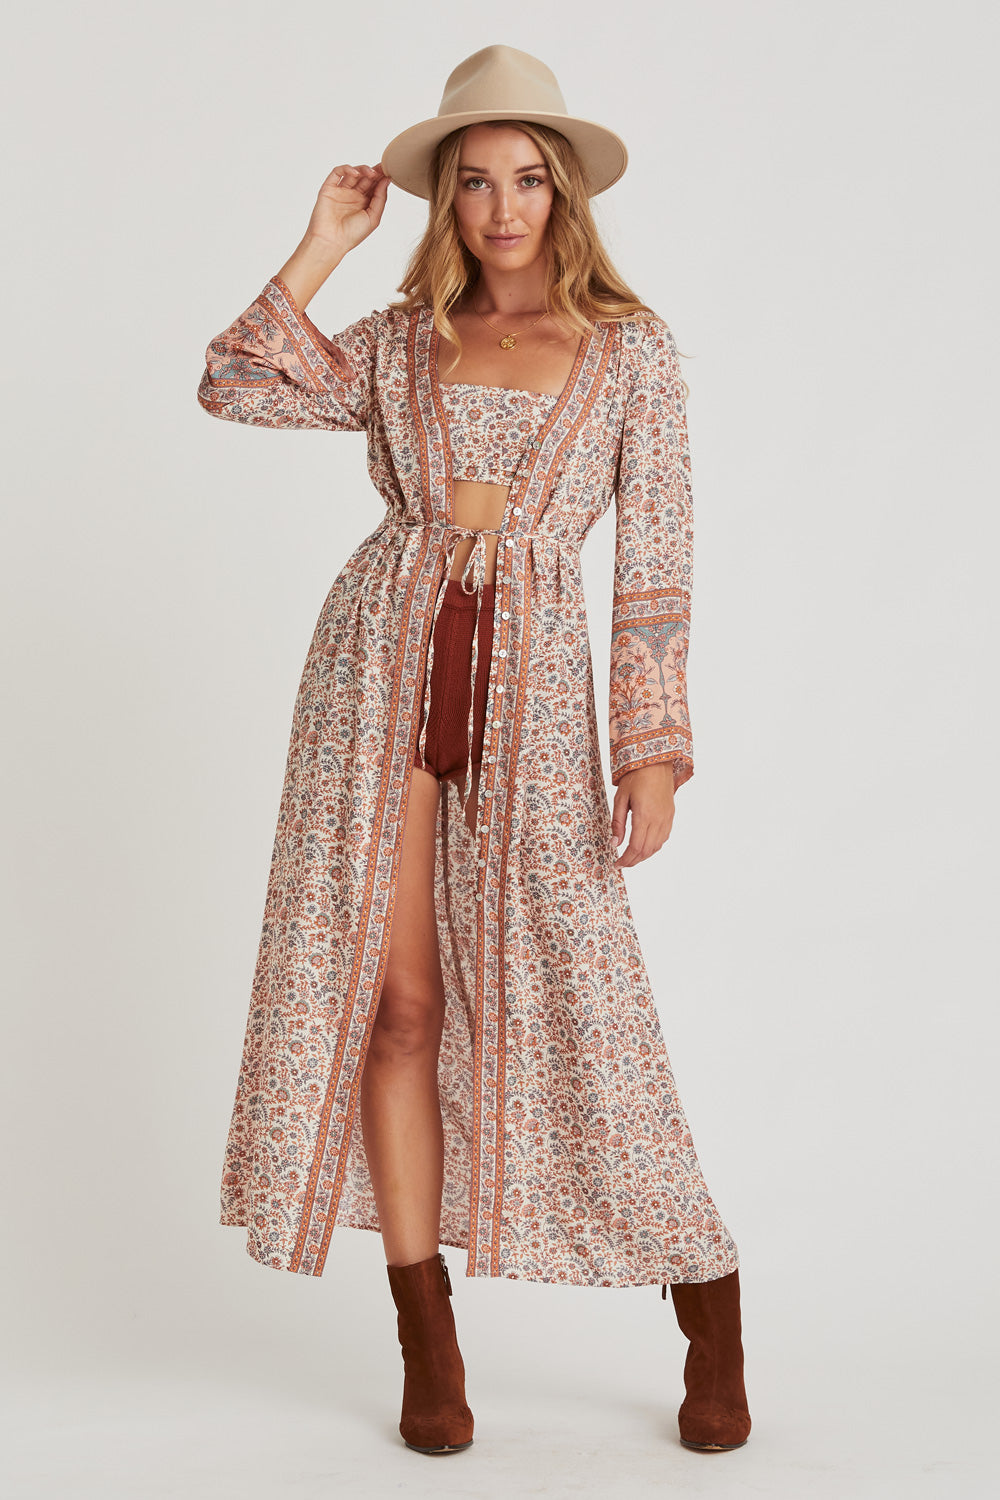 Fleetwood Duster Dress in Harvest Gold